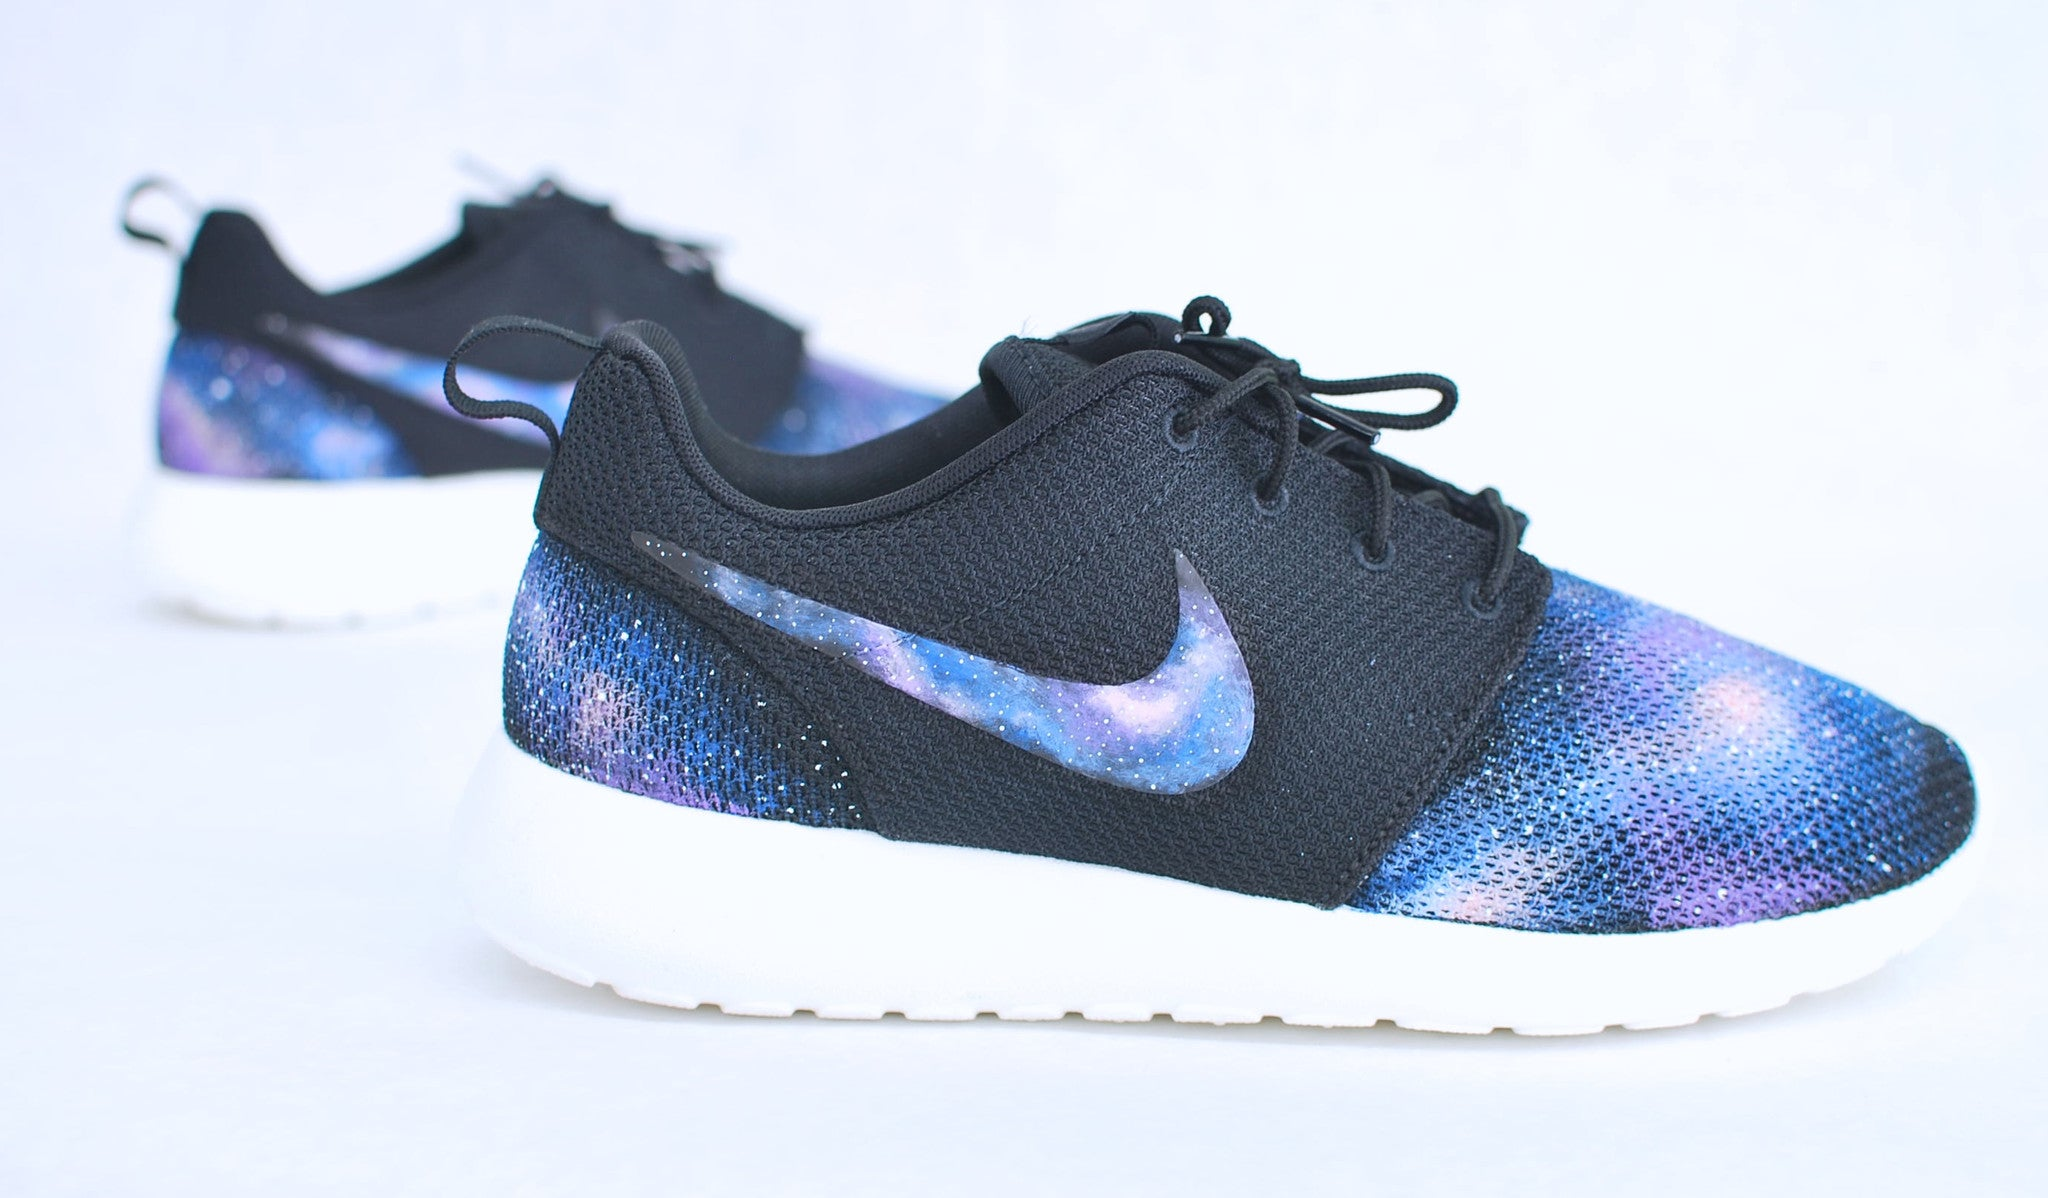 online store cf29f 05ec3 Custom Nike Roshe Run - Hand Painted Galaxy Sneakers - B Street Shoes ...